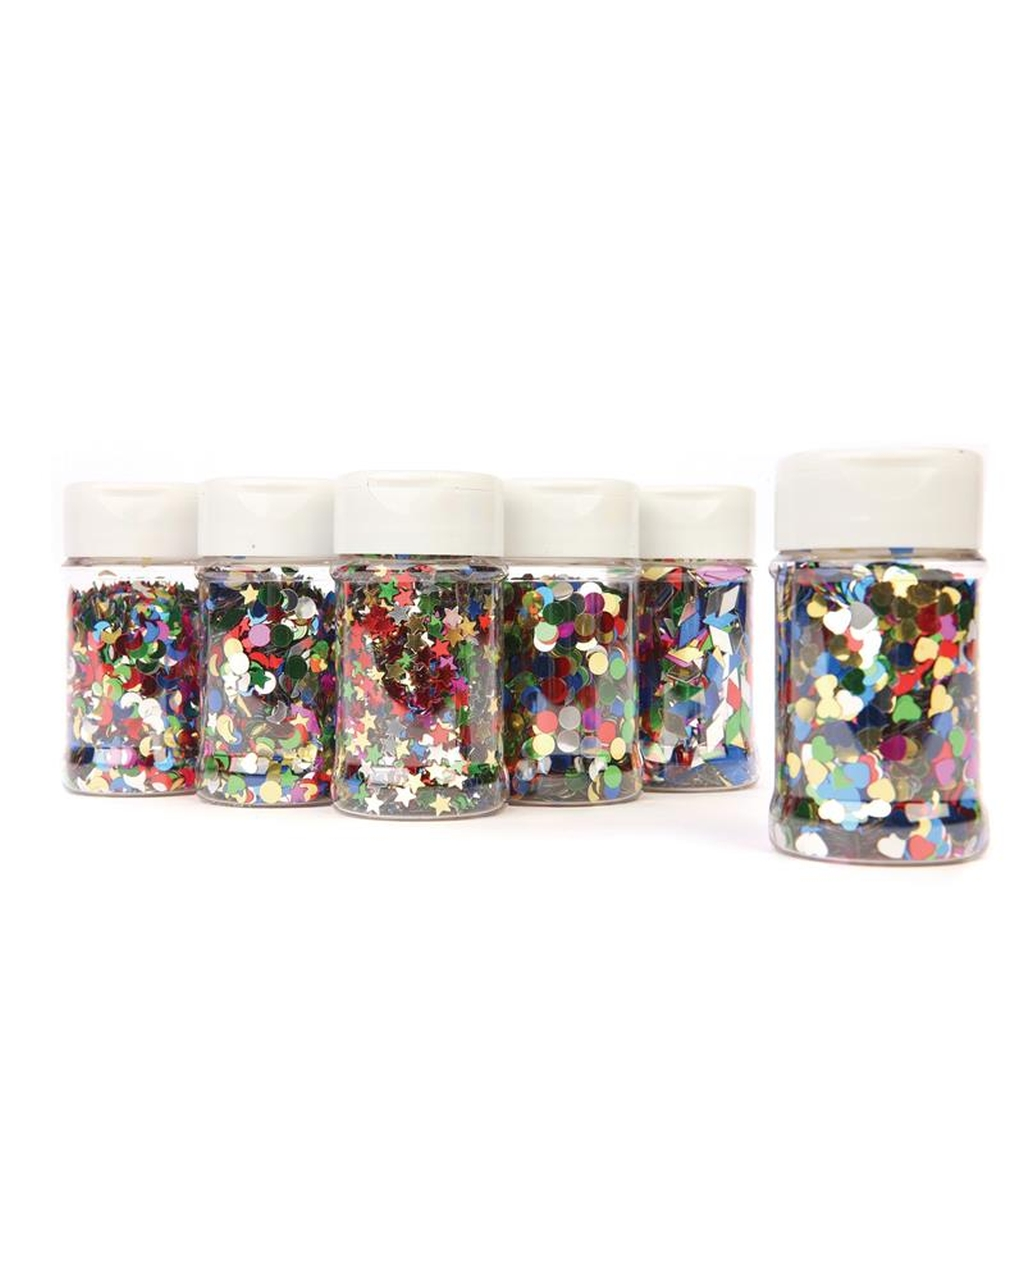 Sequins Collage Shapes 50g